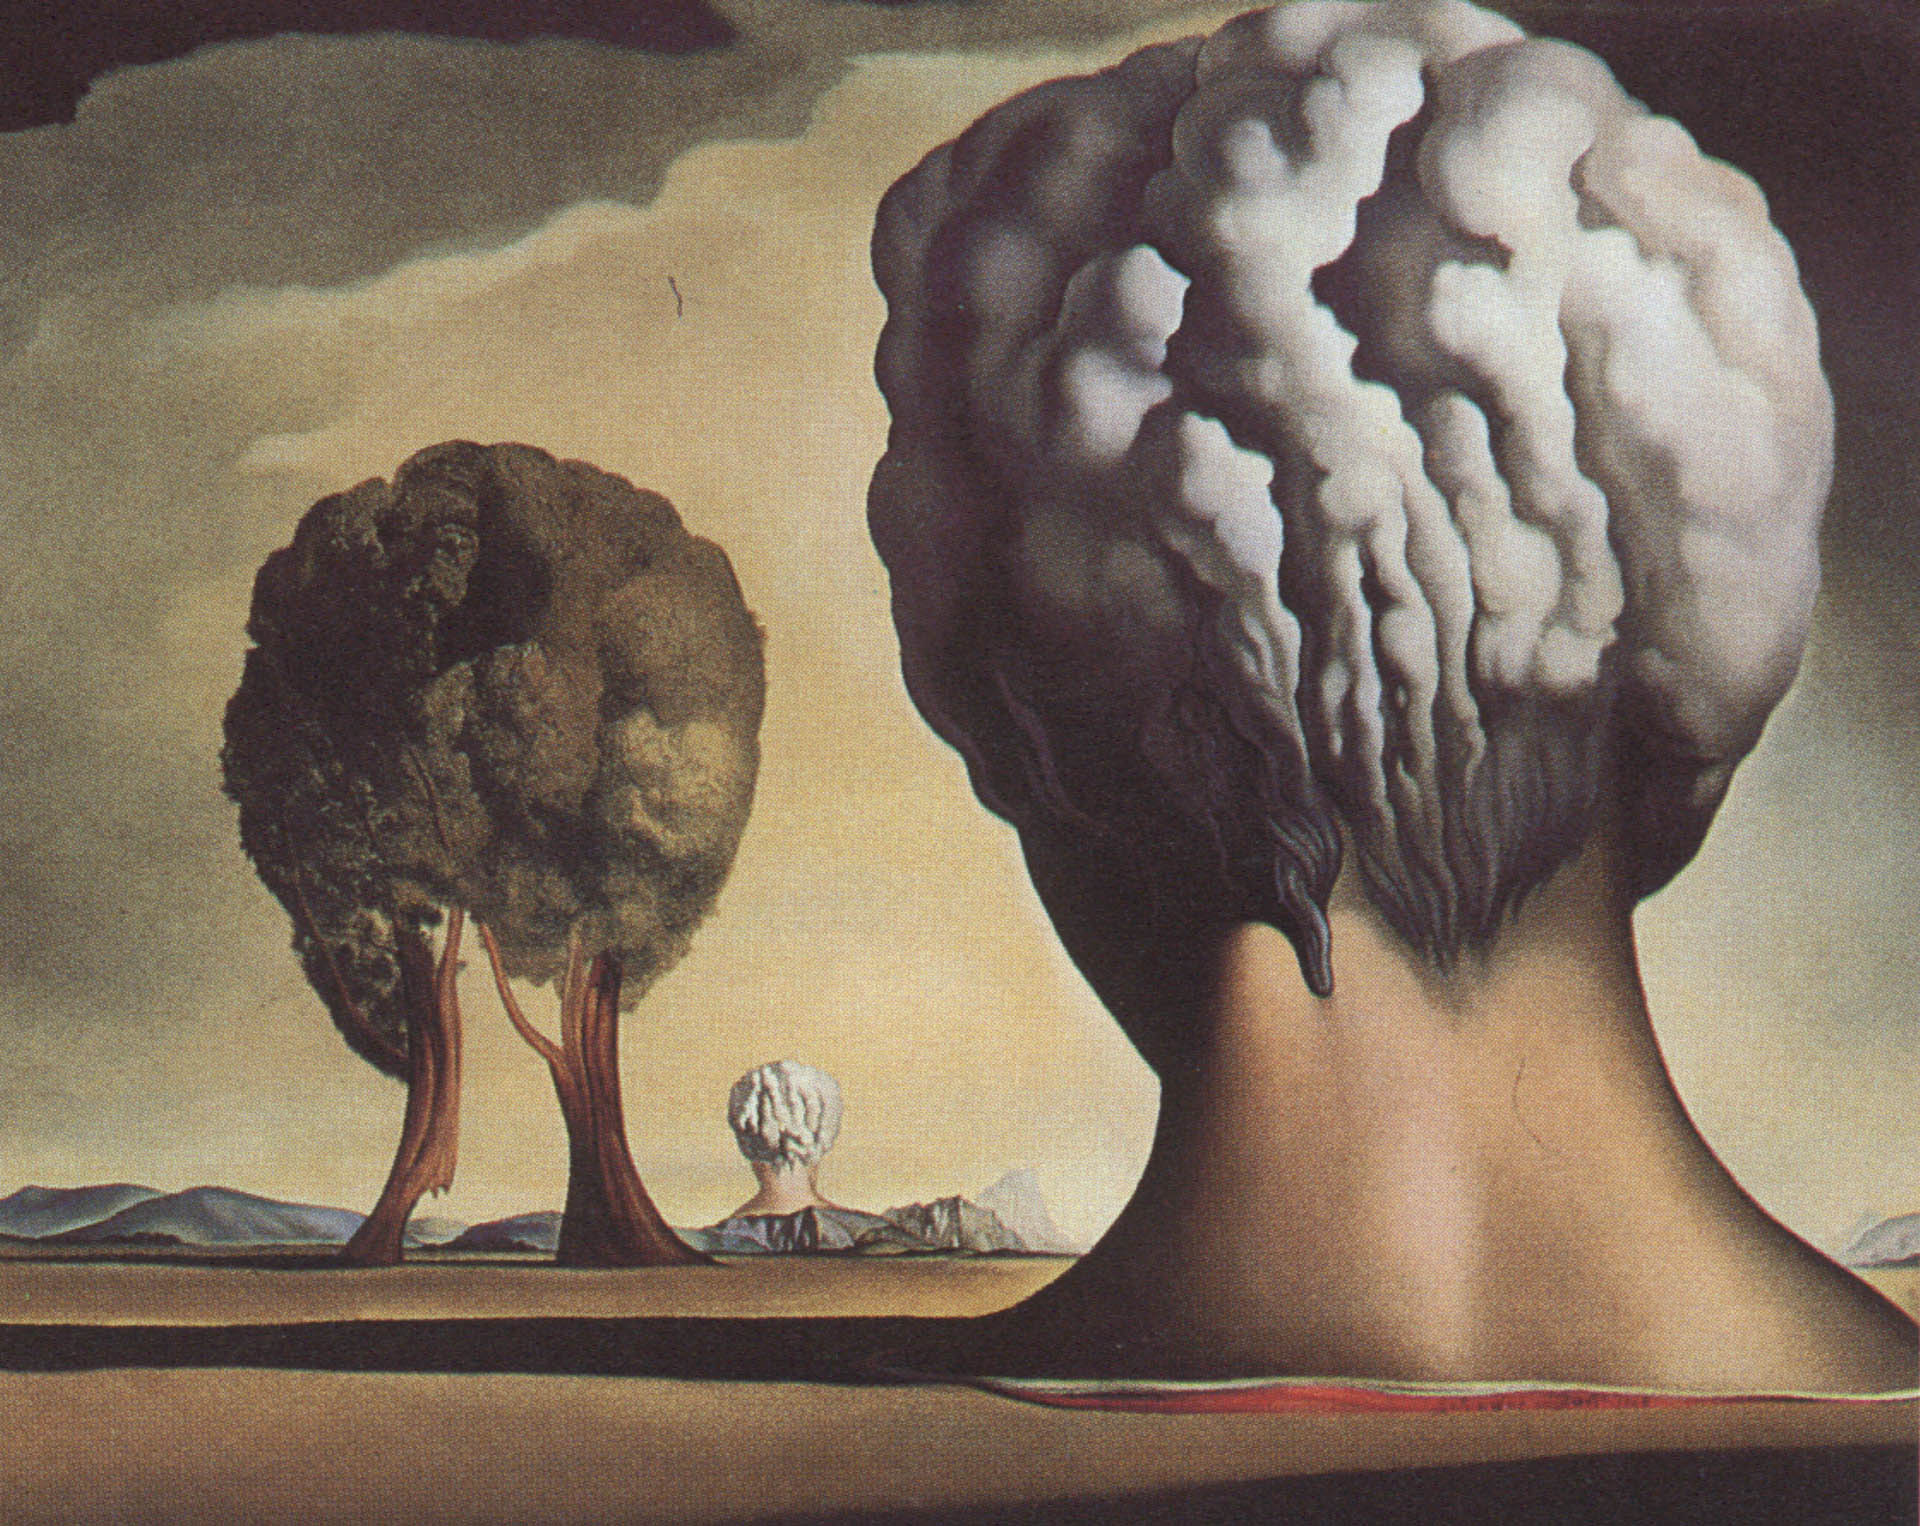 surrealism an analysis of salvador dalí's Earlier this year an exhibition opened at the fundació gala-salvador dalí's púbol castle revealing a version of the iconic surrealist as seen through the eyes of female photographers.